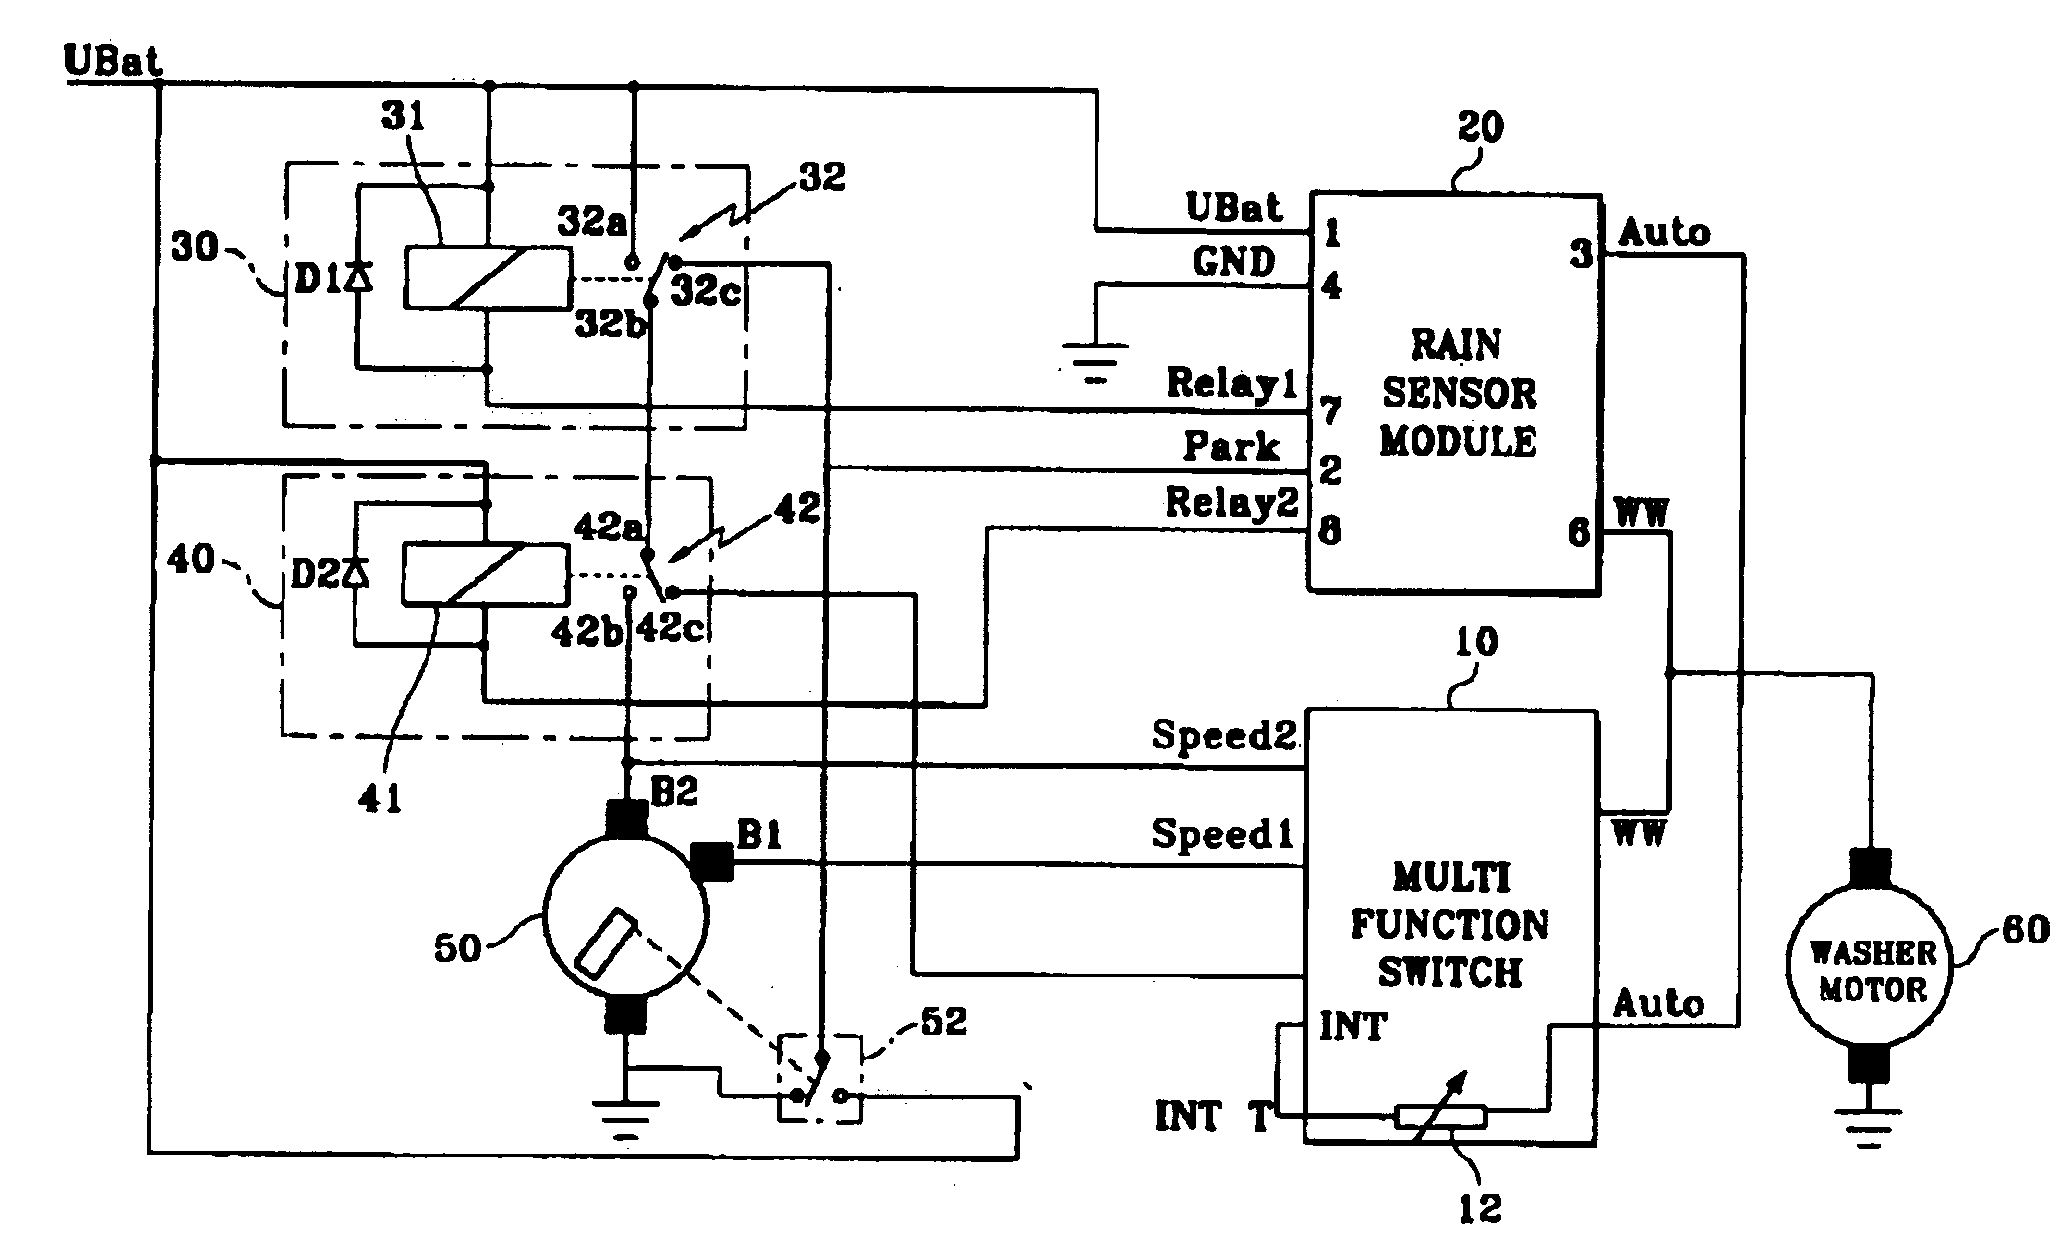 Rain Light Sensor Wiring Diagram 32 Images Motion Detector Us06958585 20051025 D00000 Patent Us6958585 Windshield Wiper System Activated By Sensing Photo At